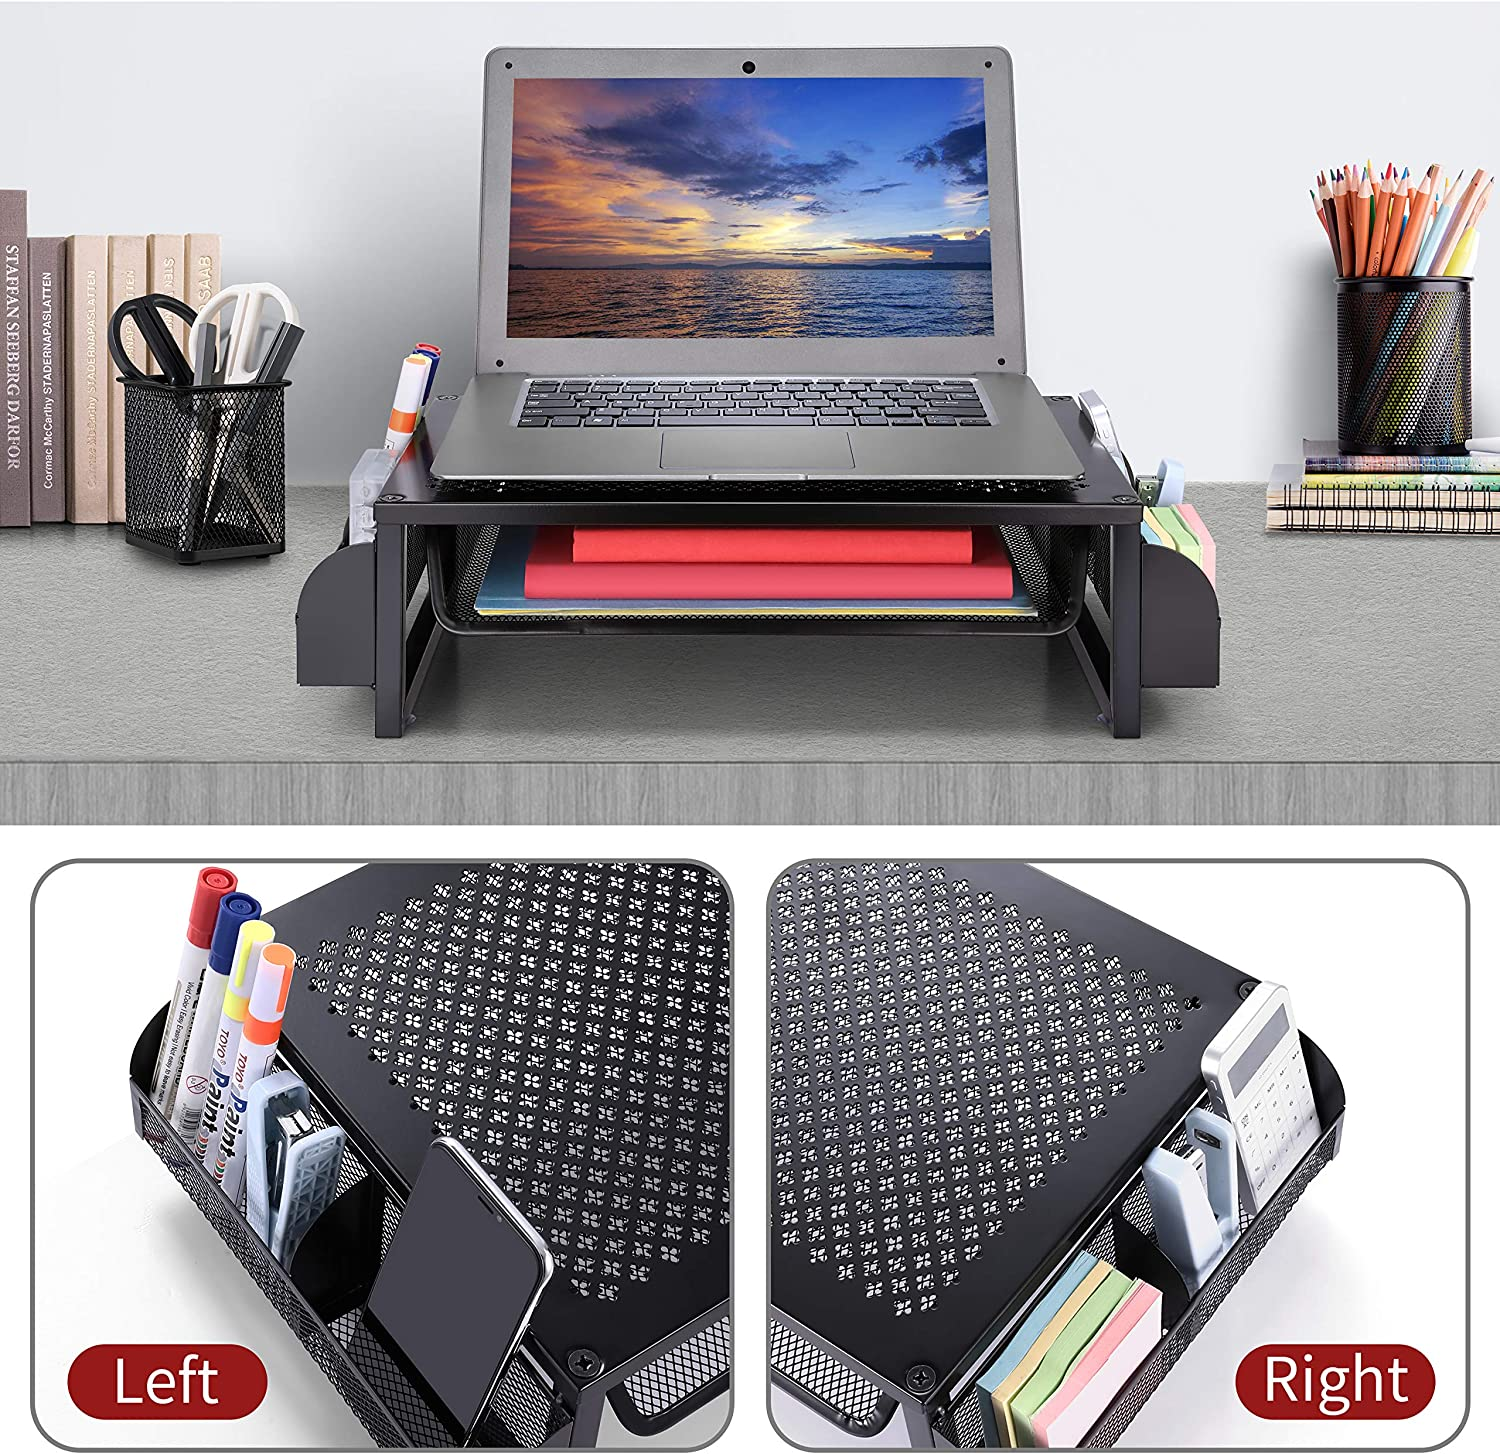 Simple Trending Metal Monitor Riser Stand and Computer Desk Organizer with Drawer, Black : Office Products